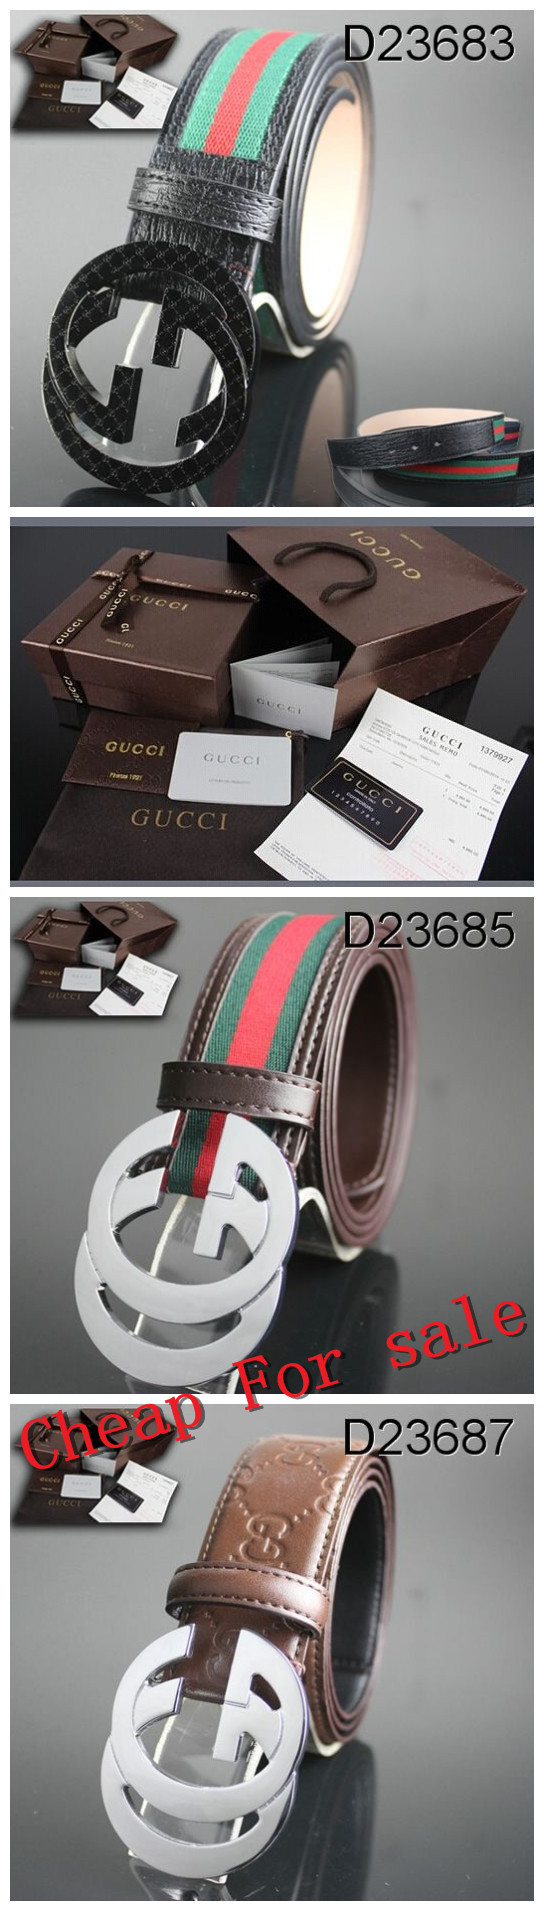 e5a8e59c71d Wholesale Gucci belts